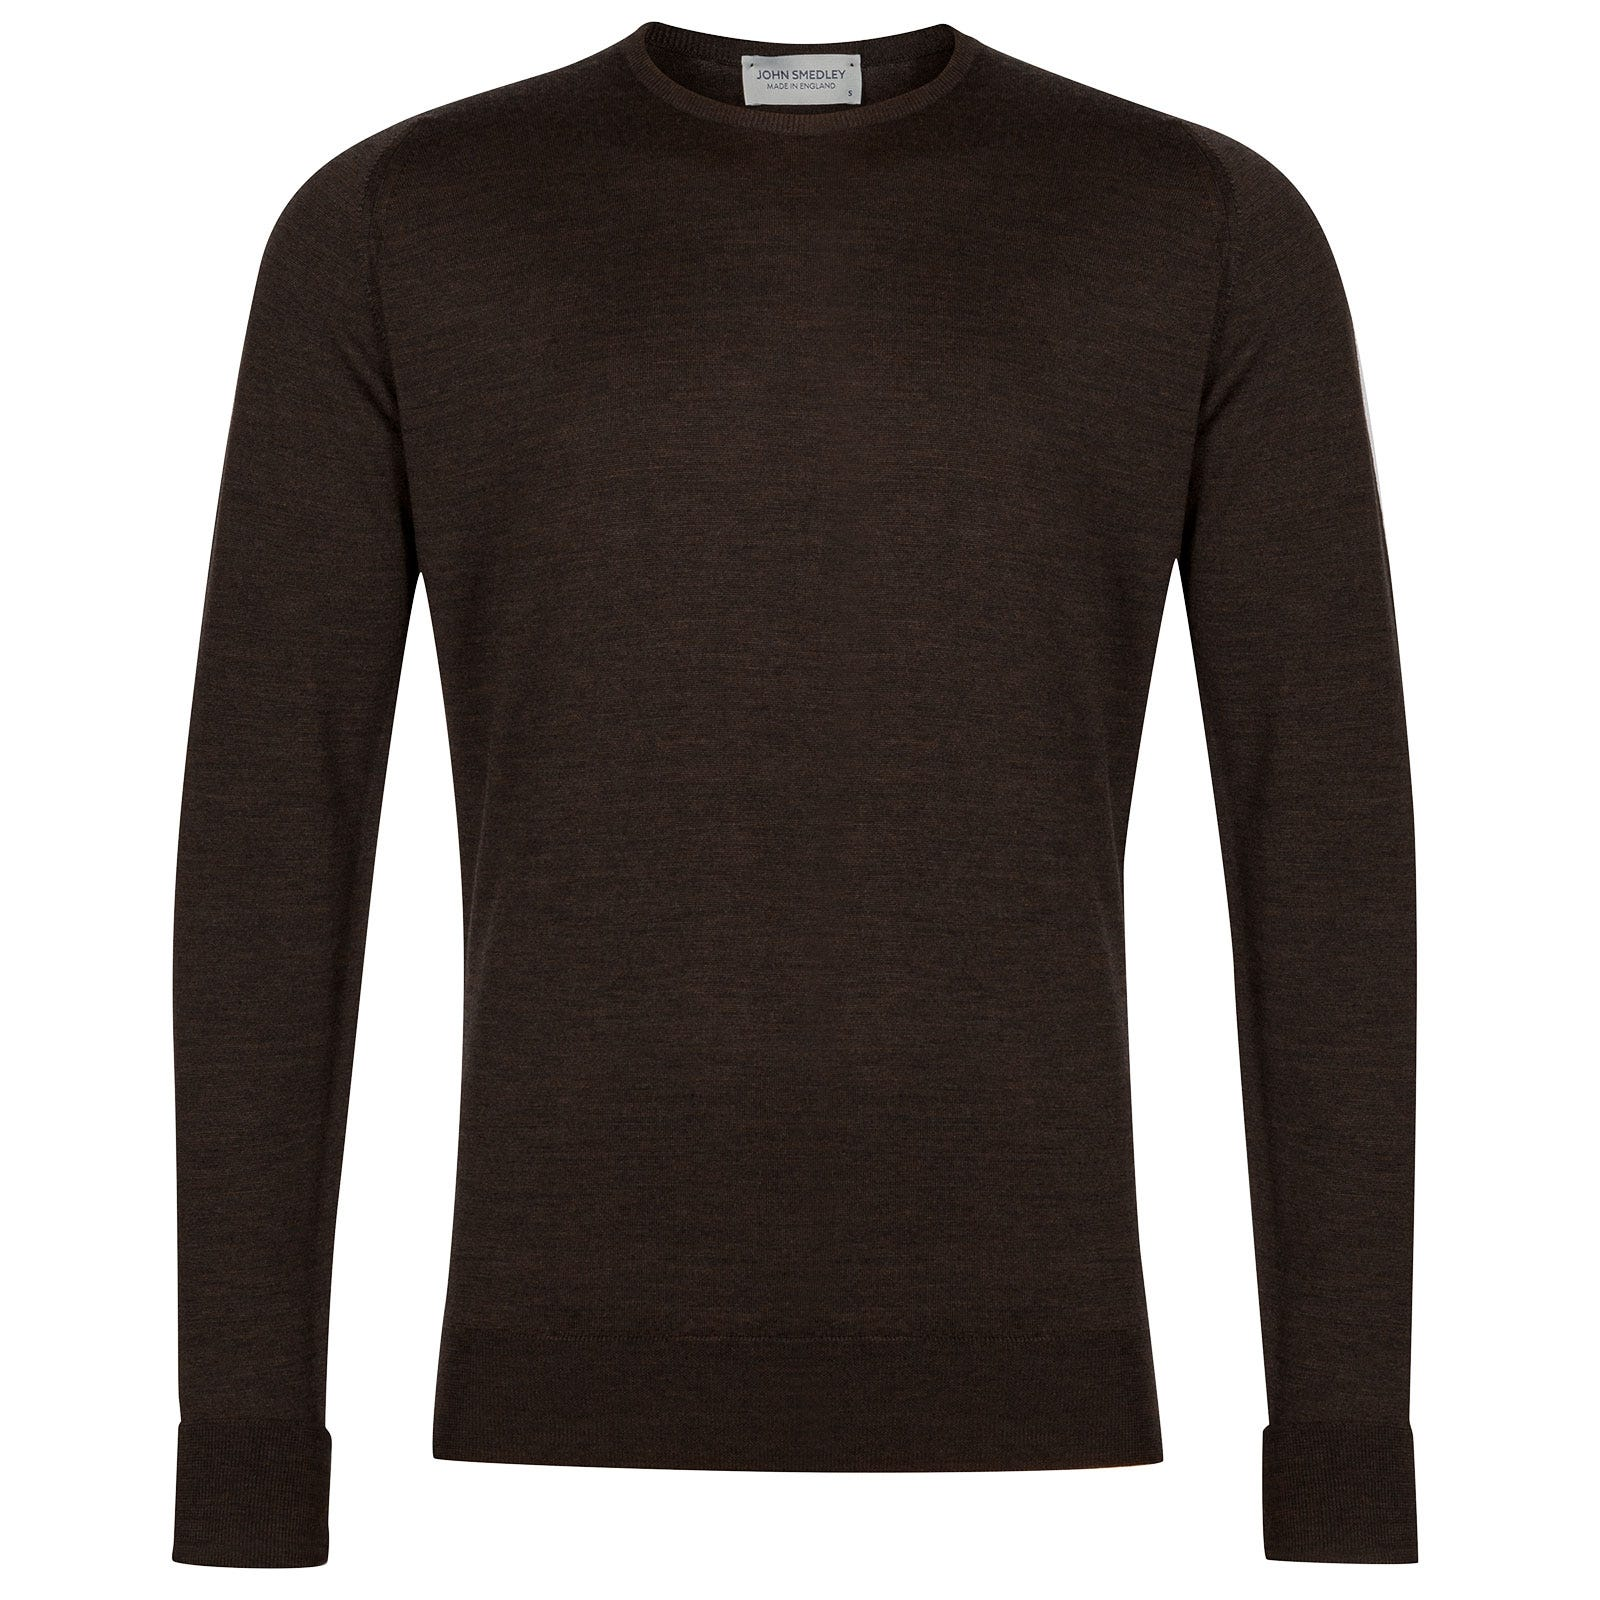 John Smedley Marcus Merino Wool Pullover in Chestnut-S